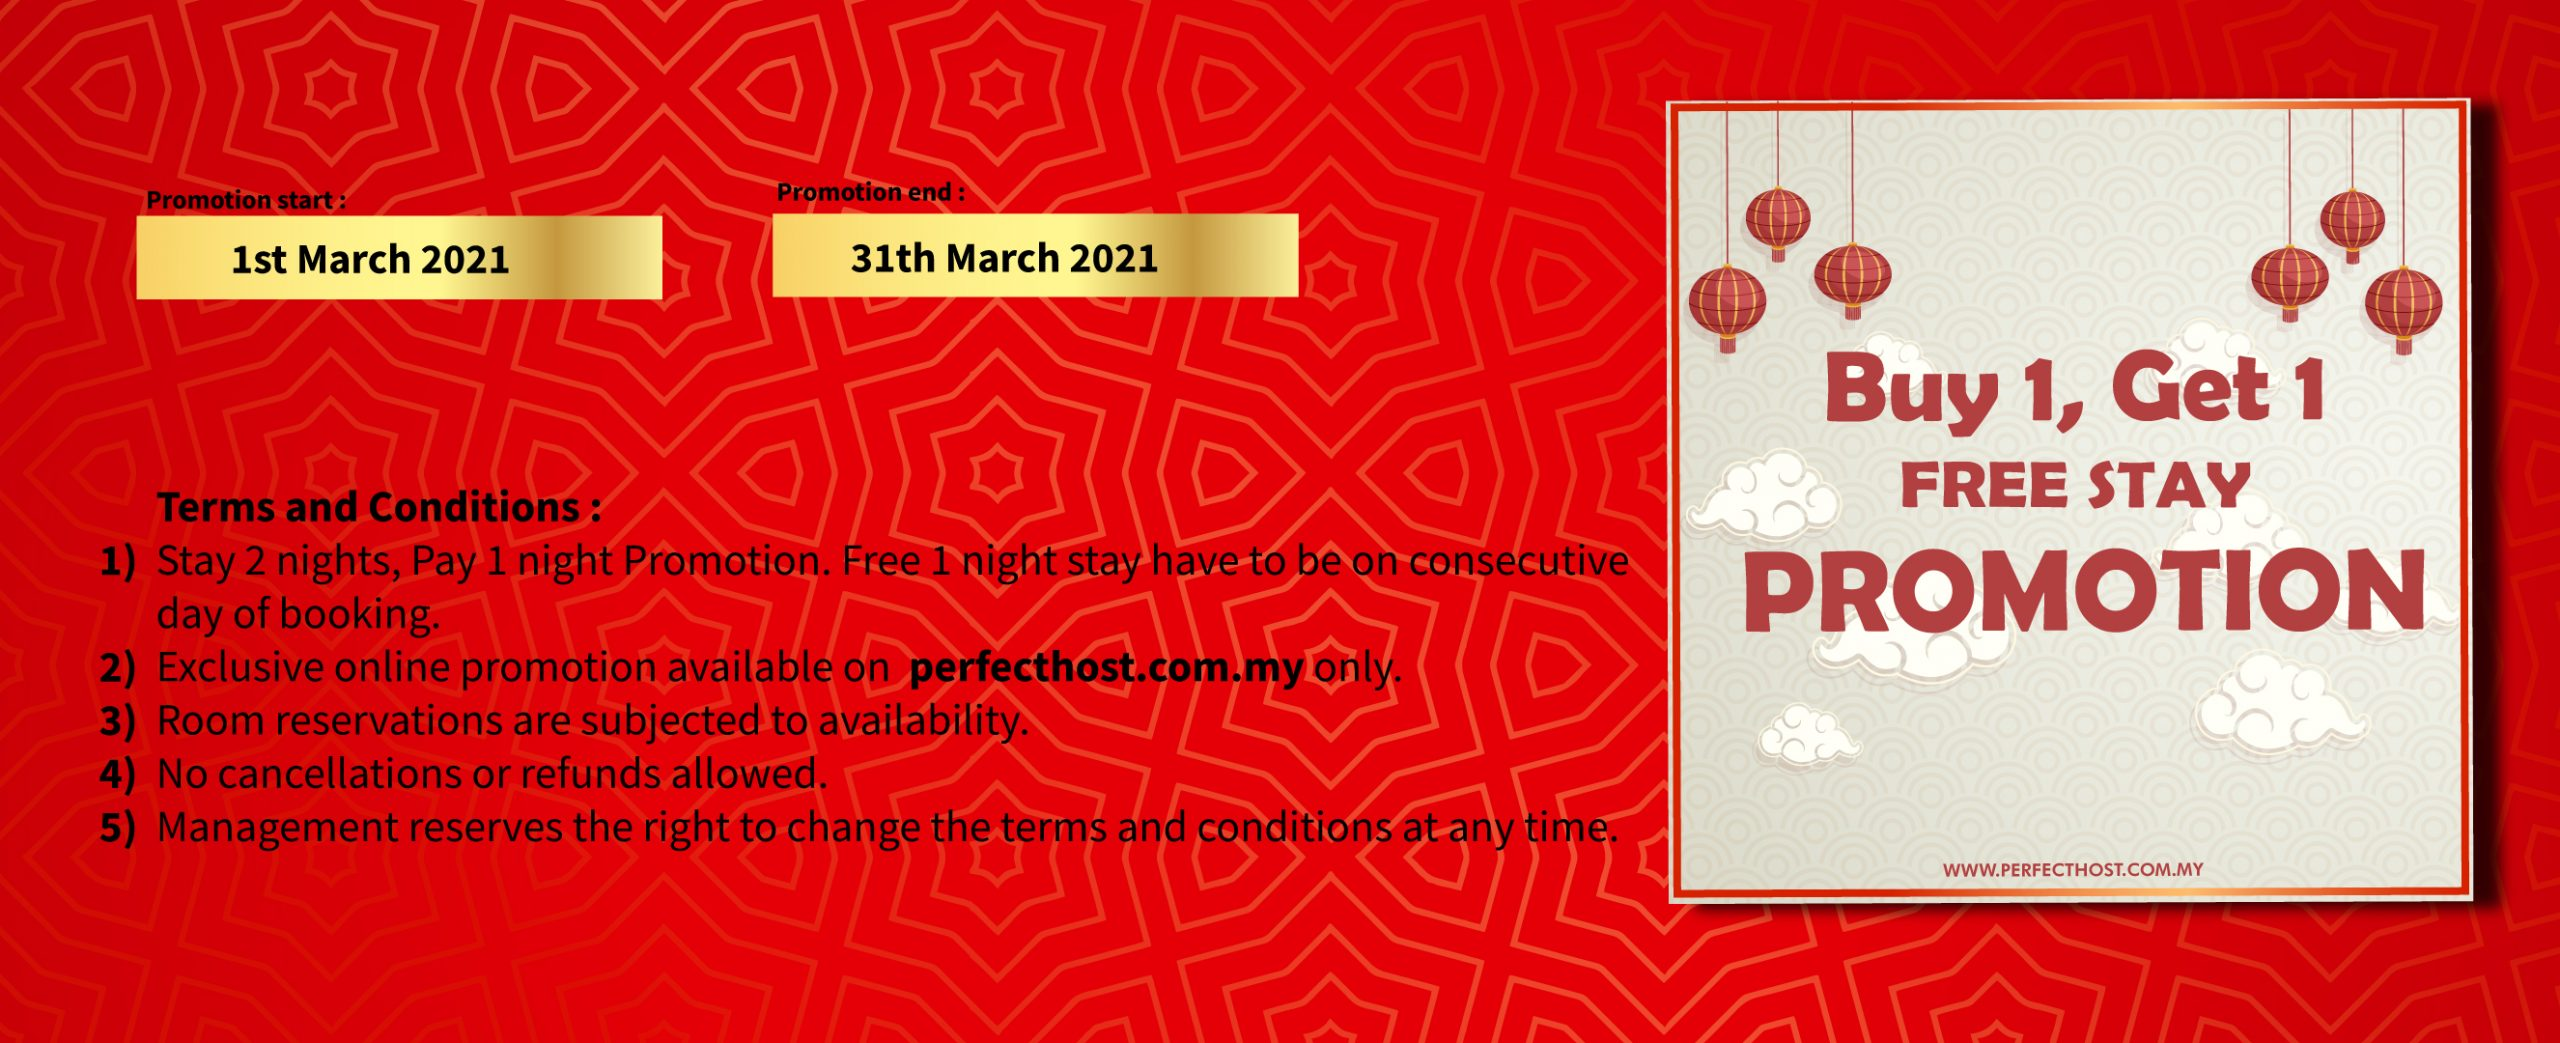 CNY-PROMO-[Recovered]-1